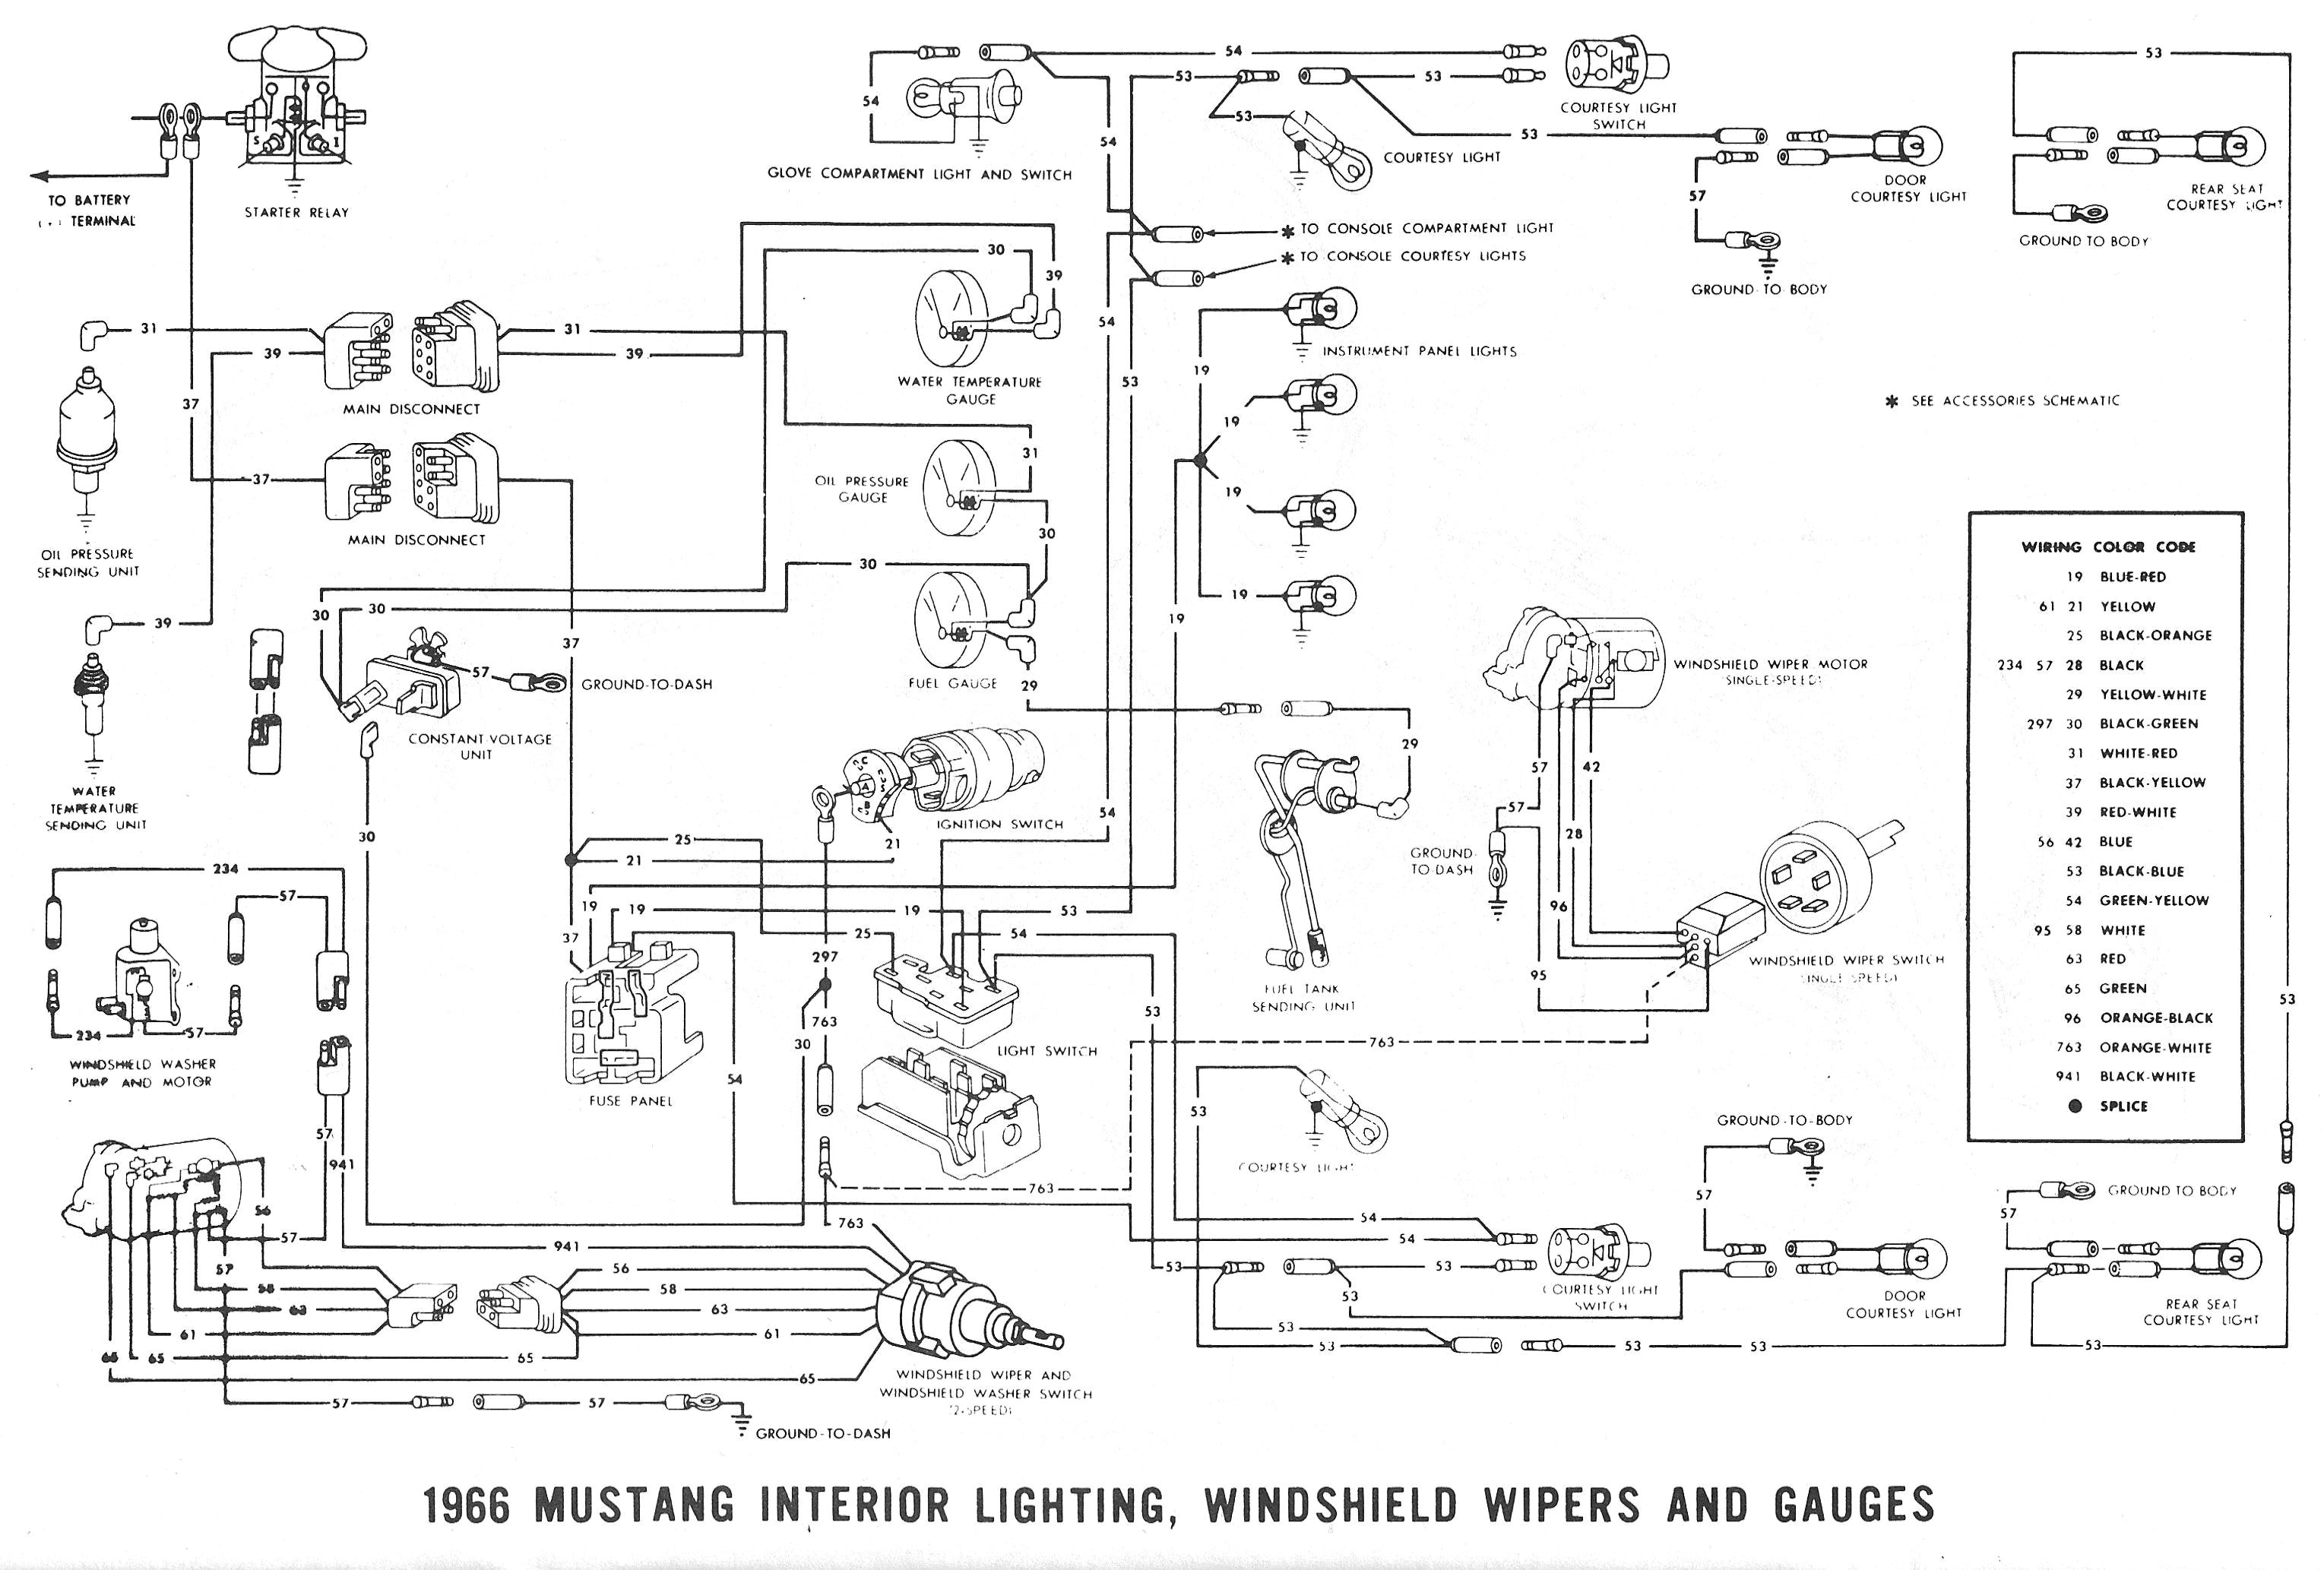 2015 Mustang Wiring Schematic Complete Wiring Diagrams \u2022 1966 Mustang  Ignition Wiring 67 Mustang Ignition Wiring Diagram